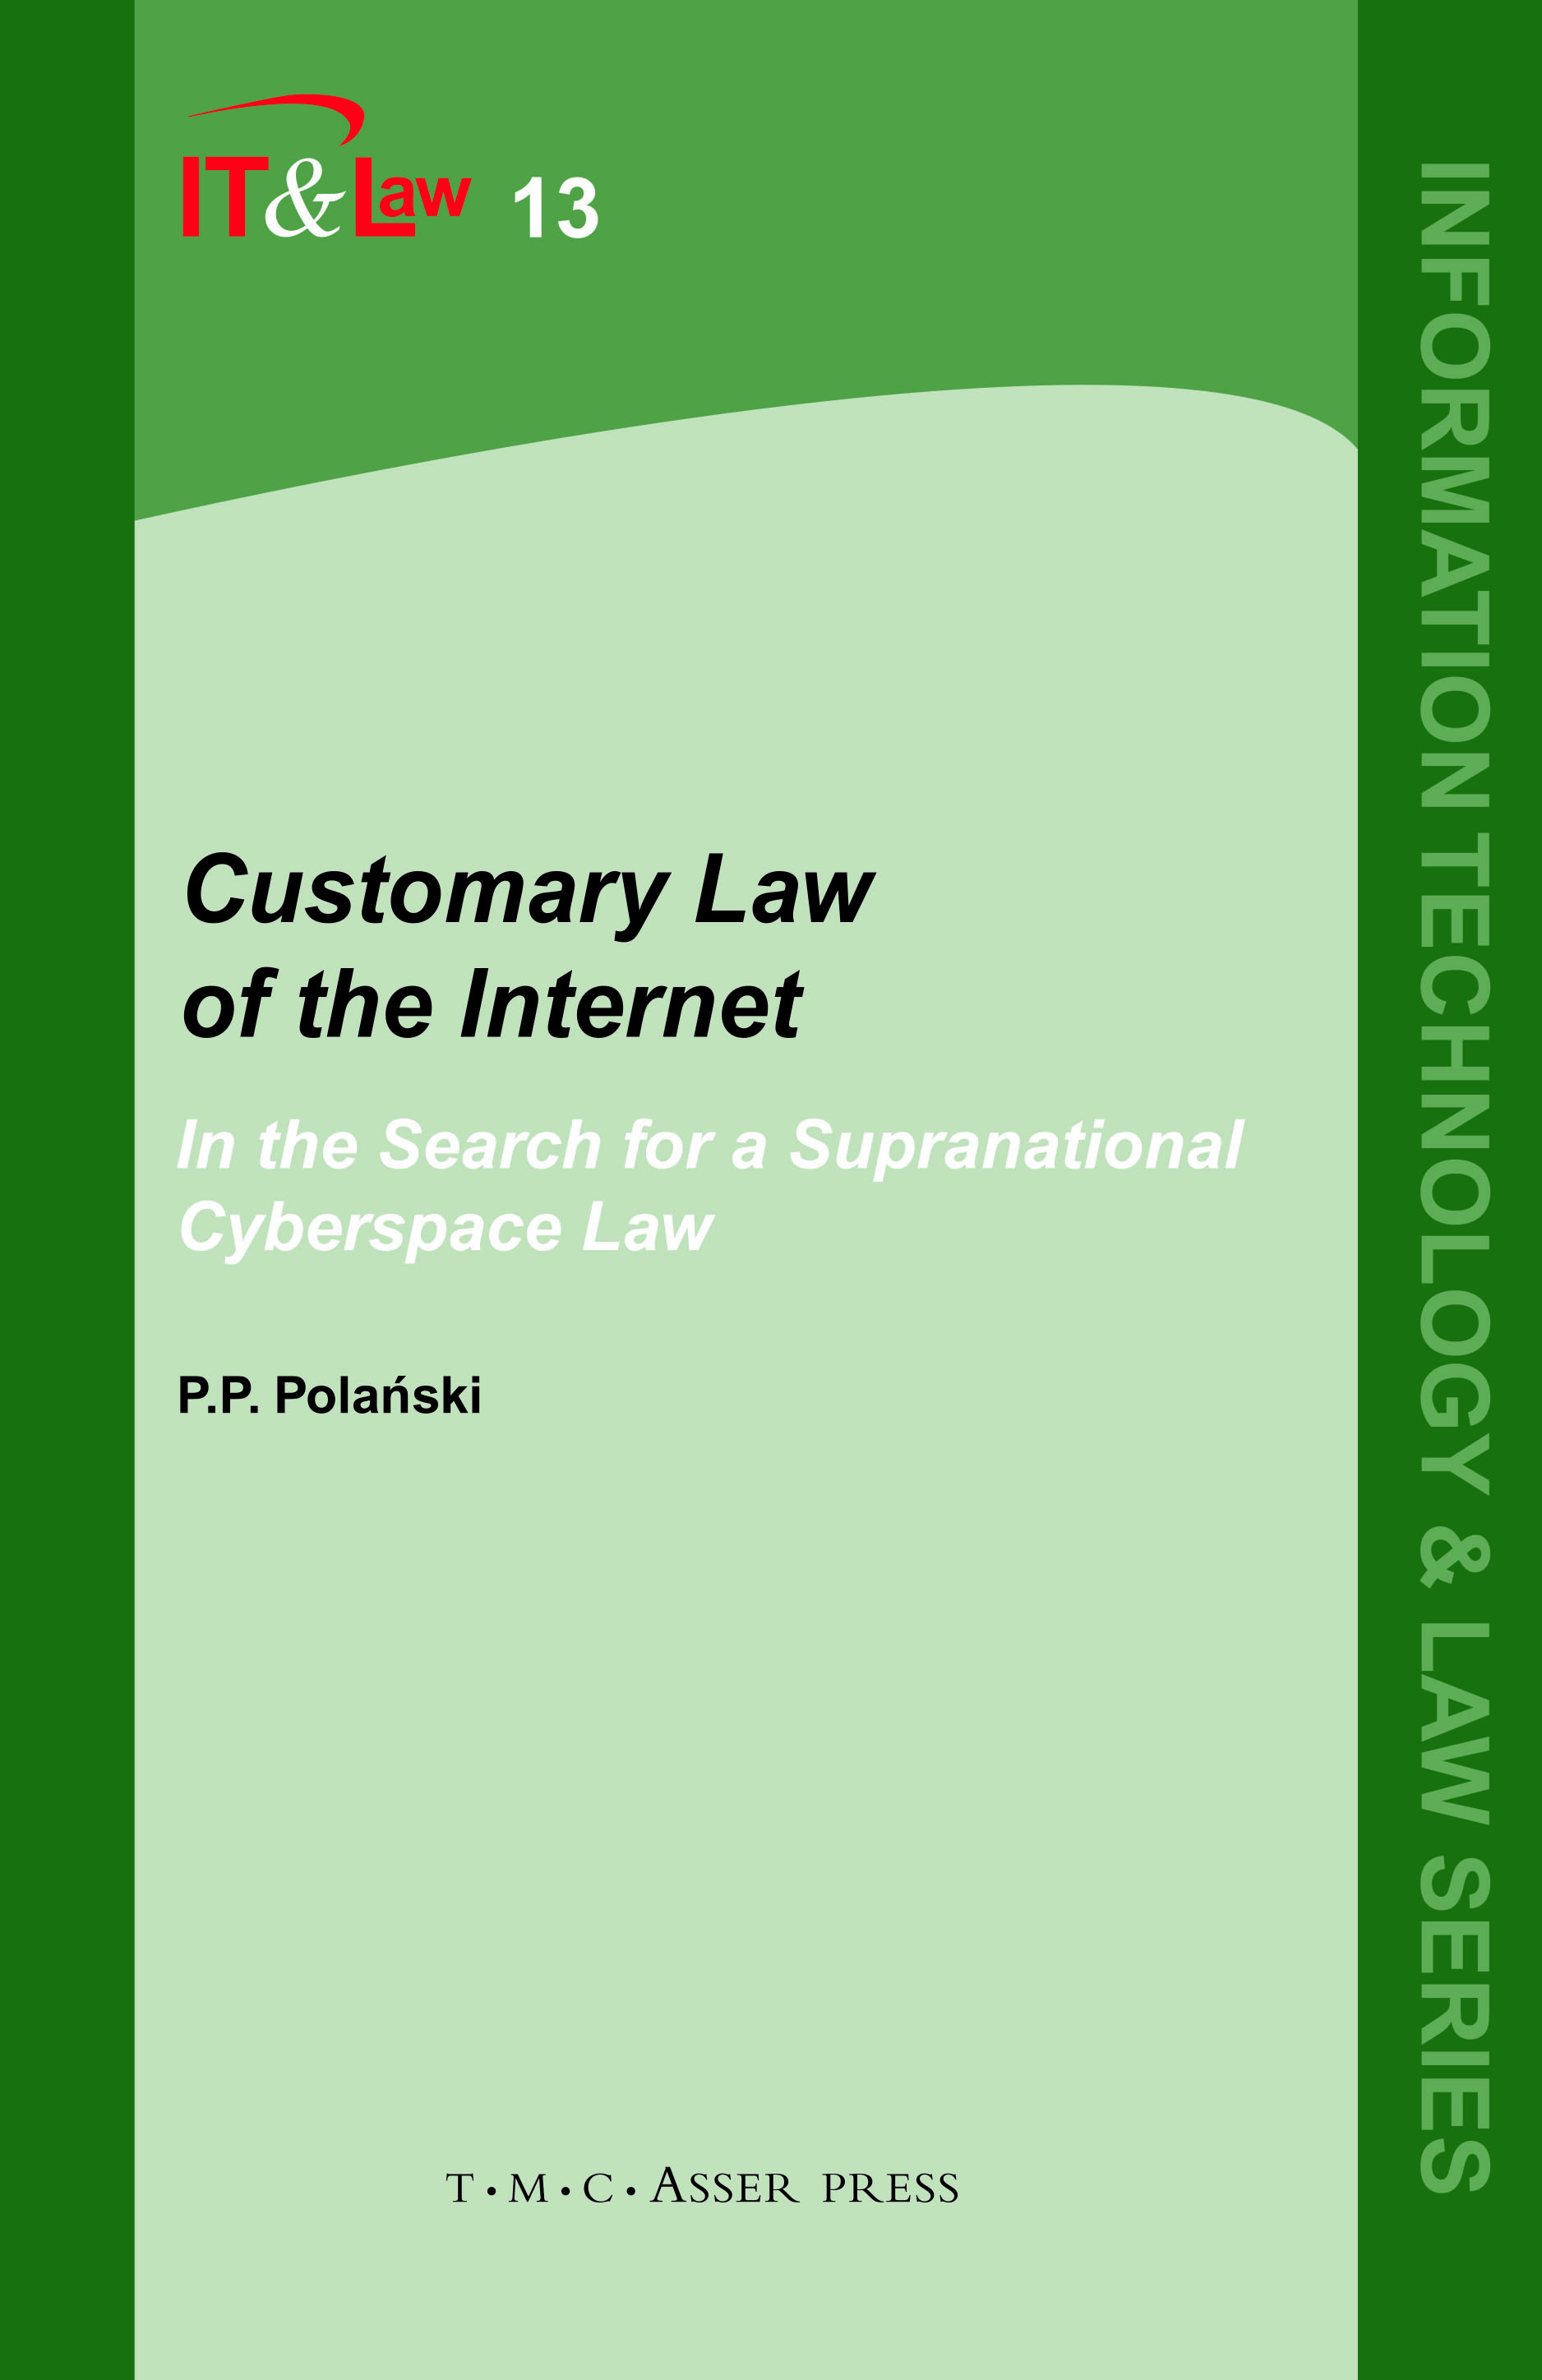 Customary Law of the Internet - In the Search for a Supranational Cyberspace Law